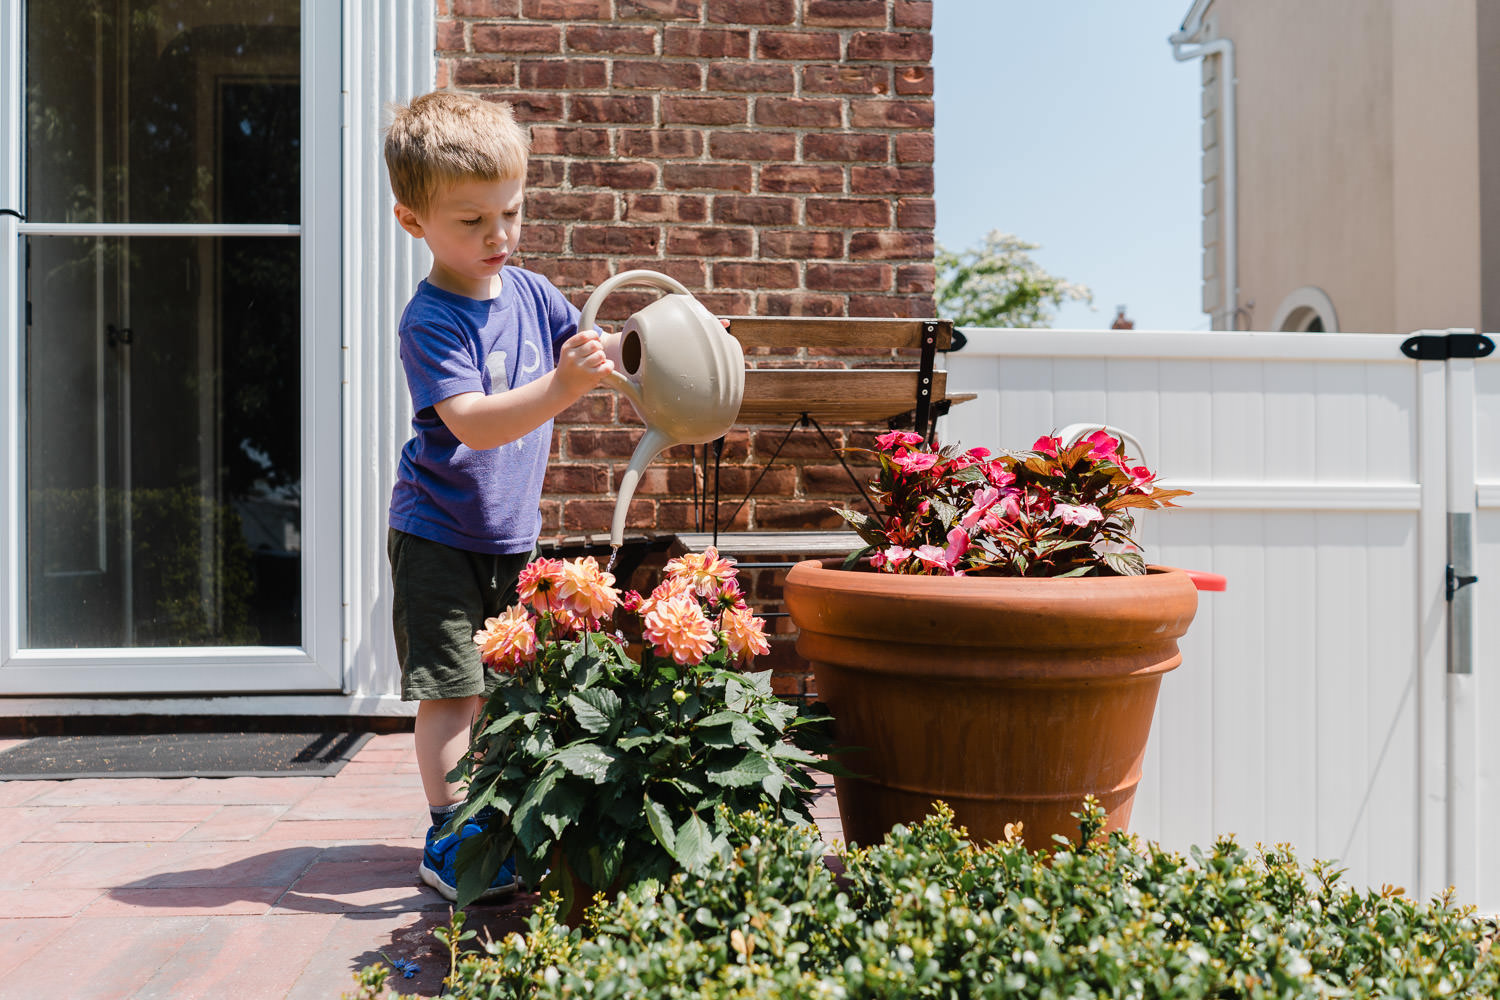 A little boy waters some flowers.